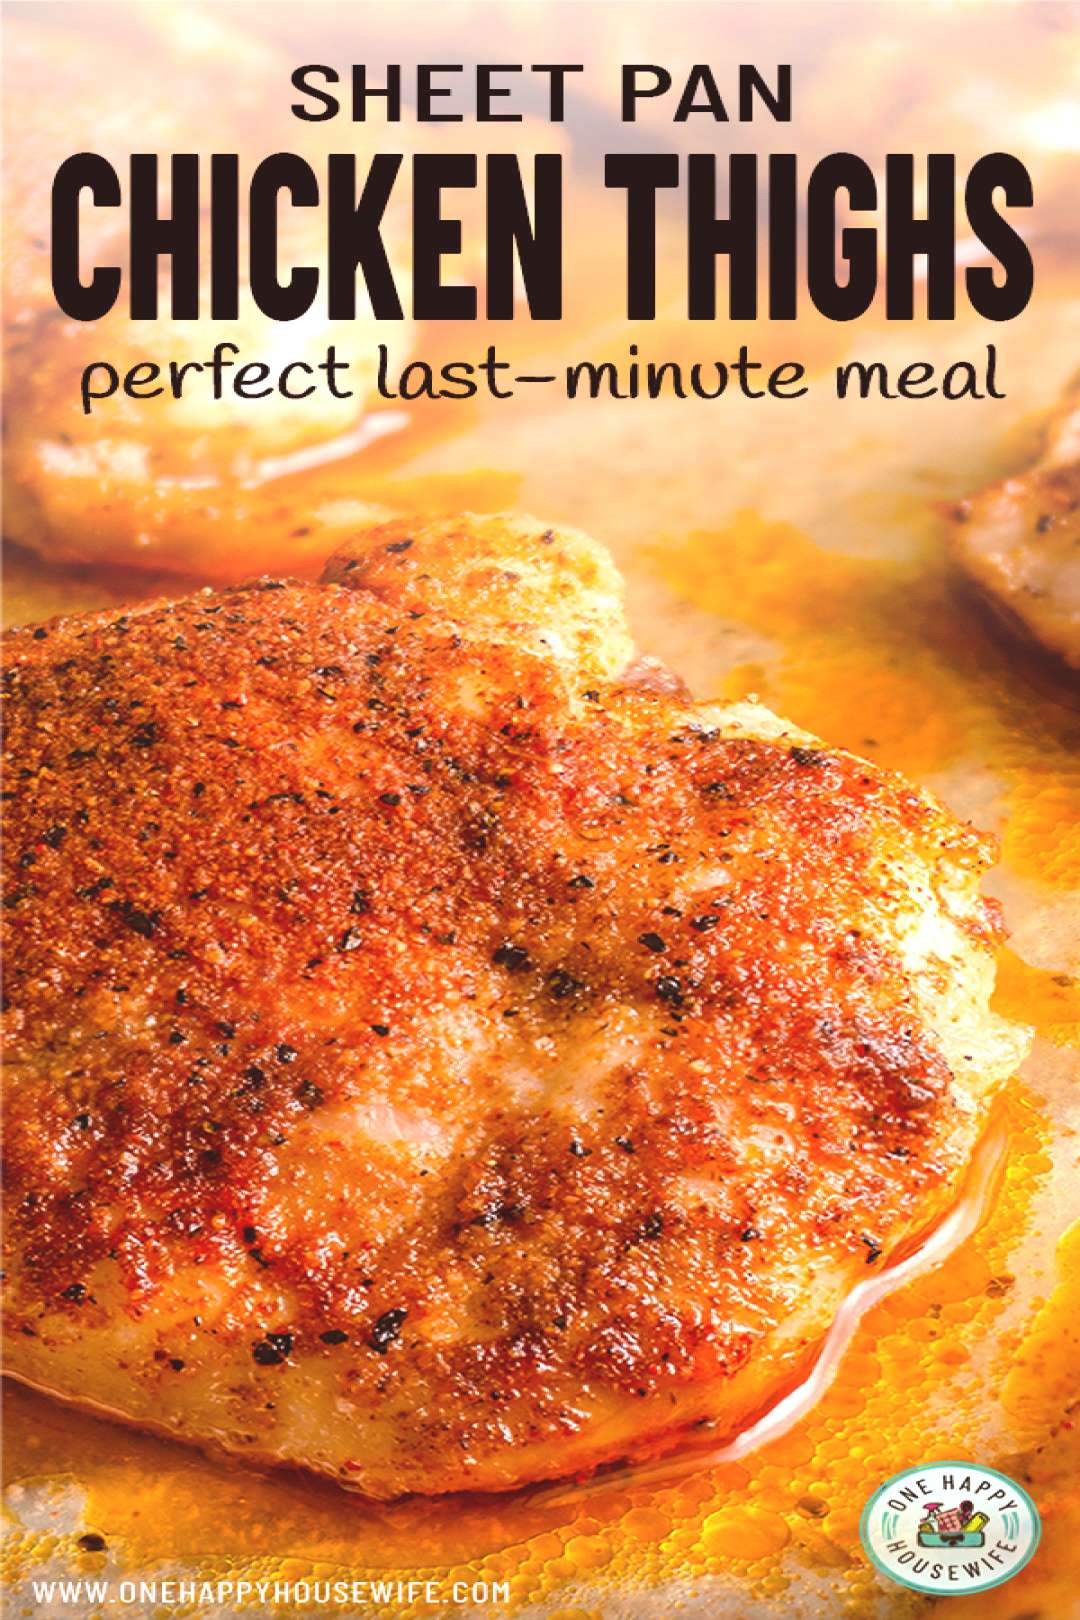 These simple Oven Roasted Chicken Thighs are the perfect last-minute meal. Super quick and easy to